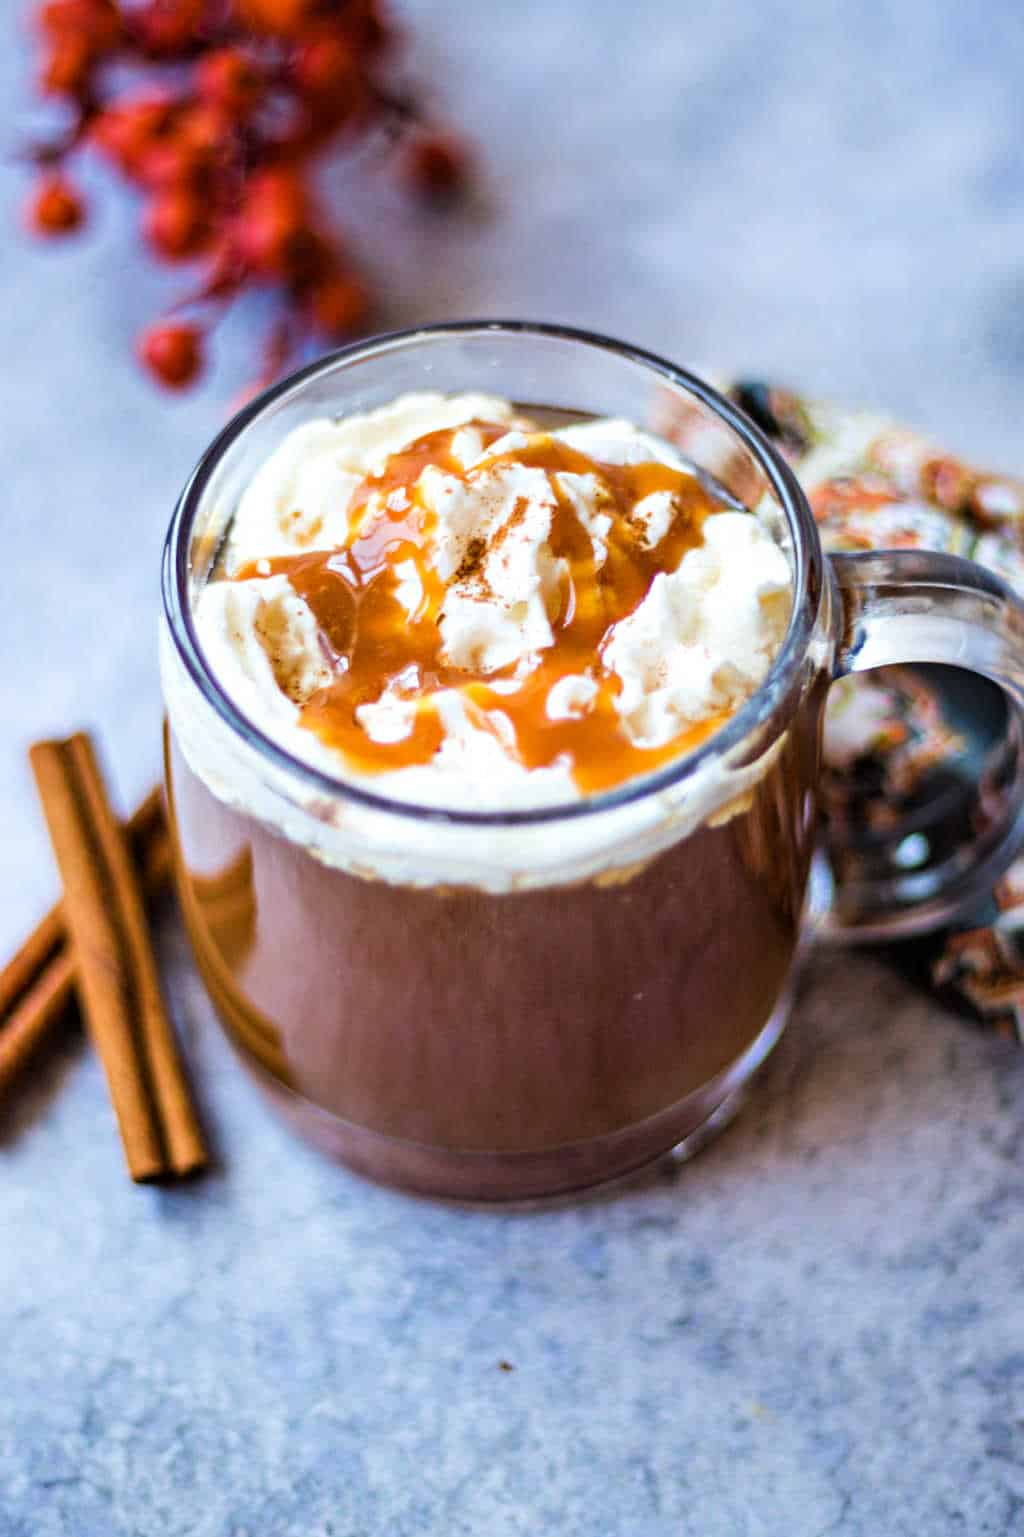 hot apple cider in a glass mug with whipped cream